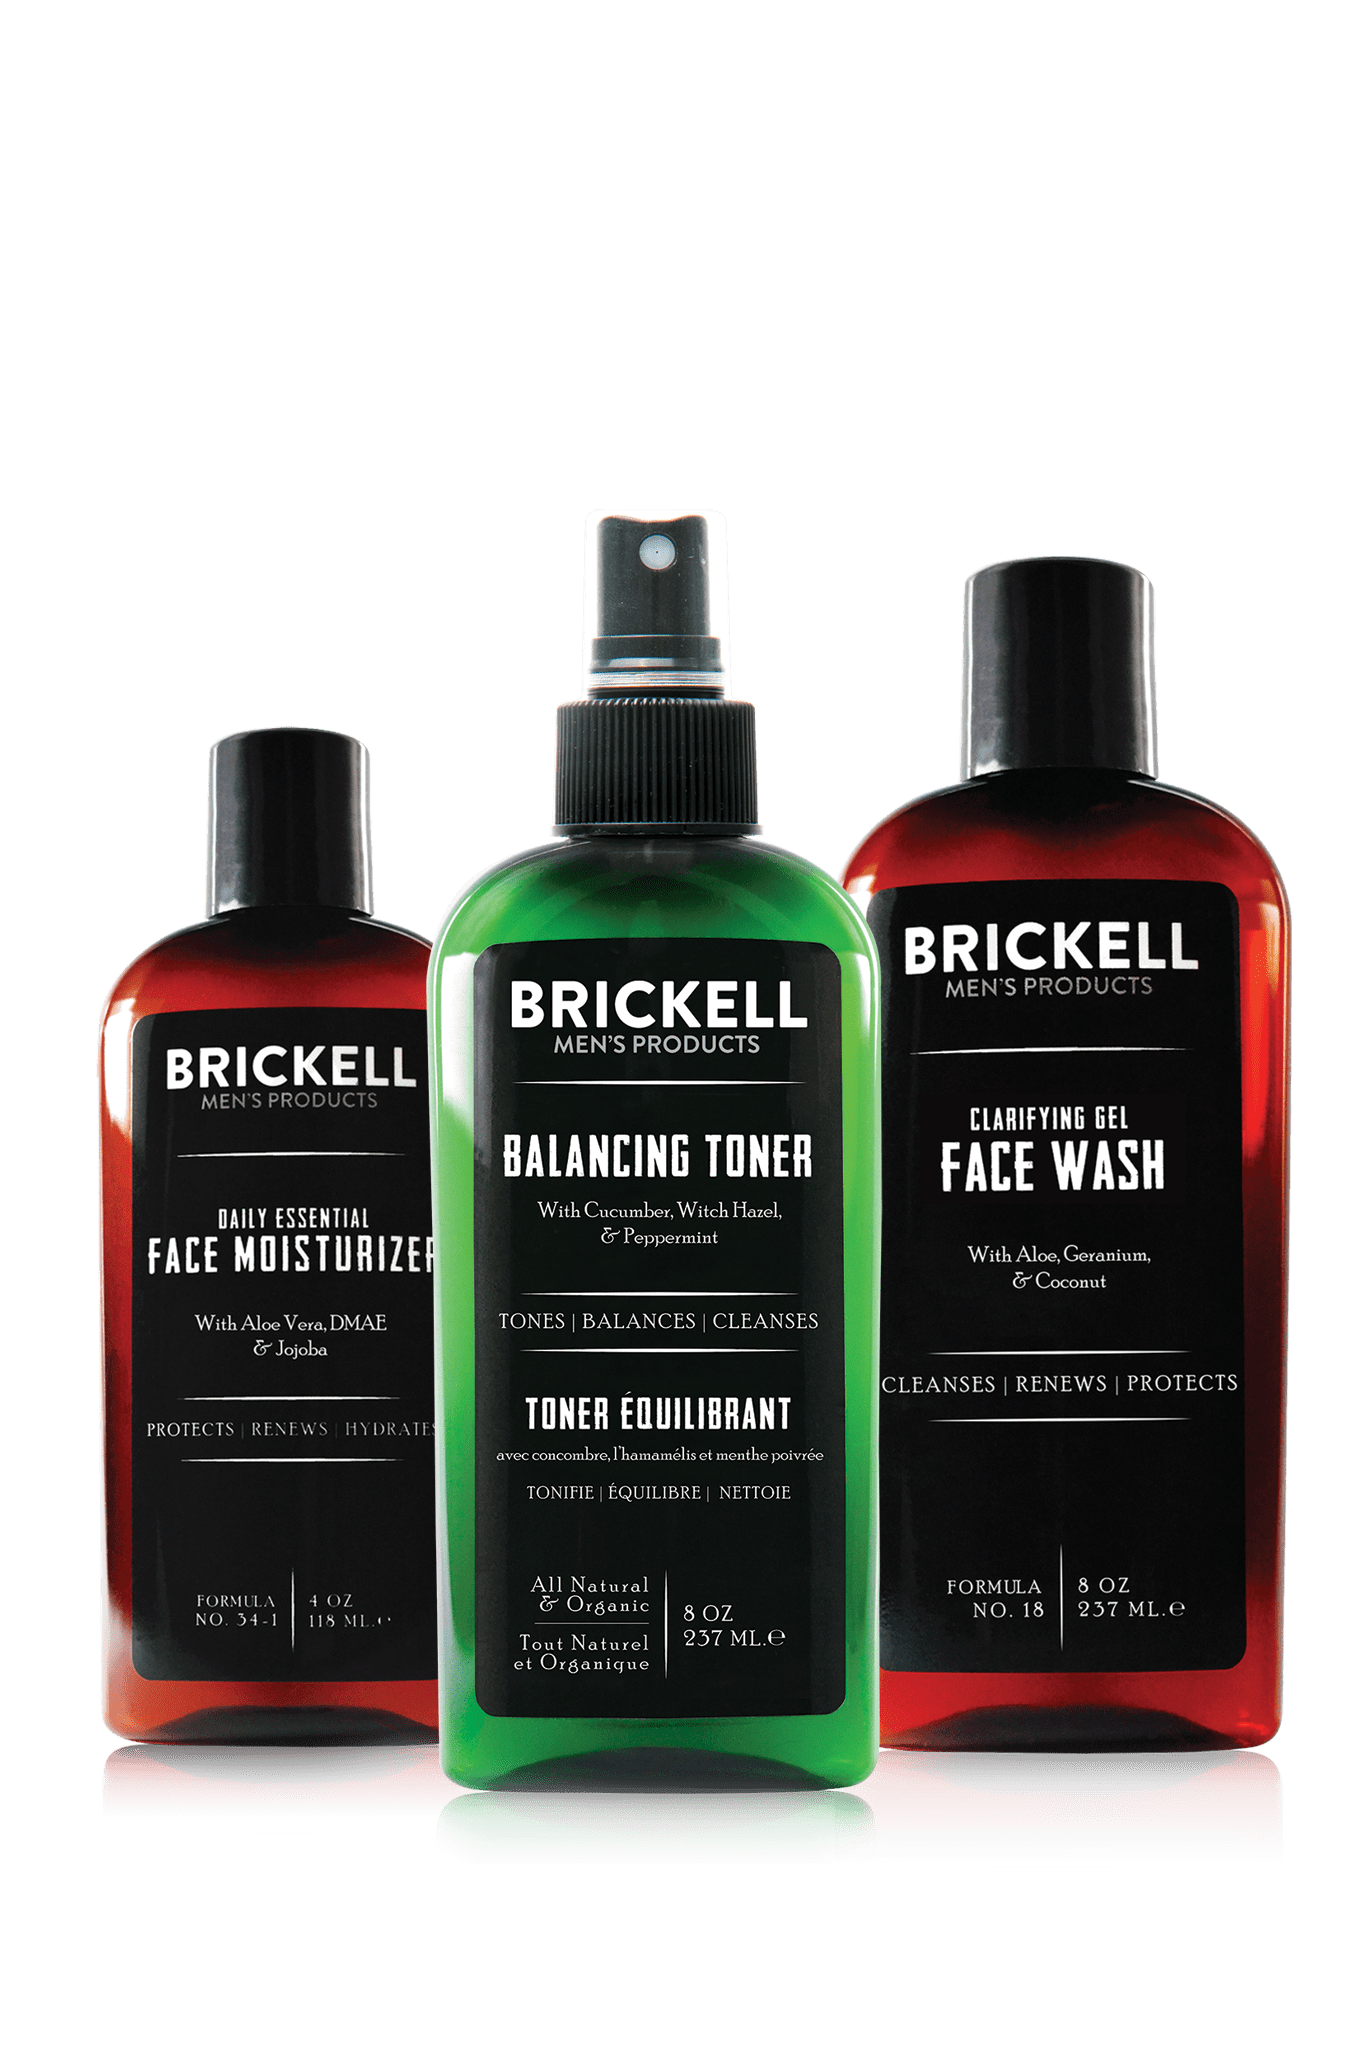 Men S Daily Face Cleanse Routine For Oily Skin Brickell Men S Products